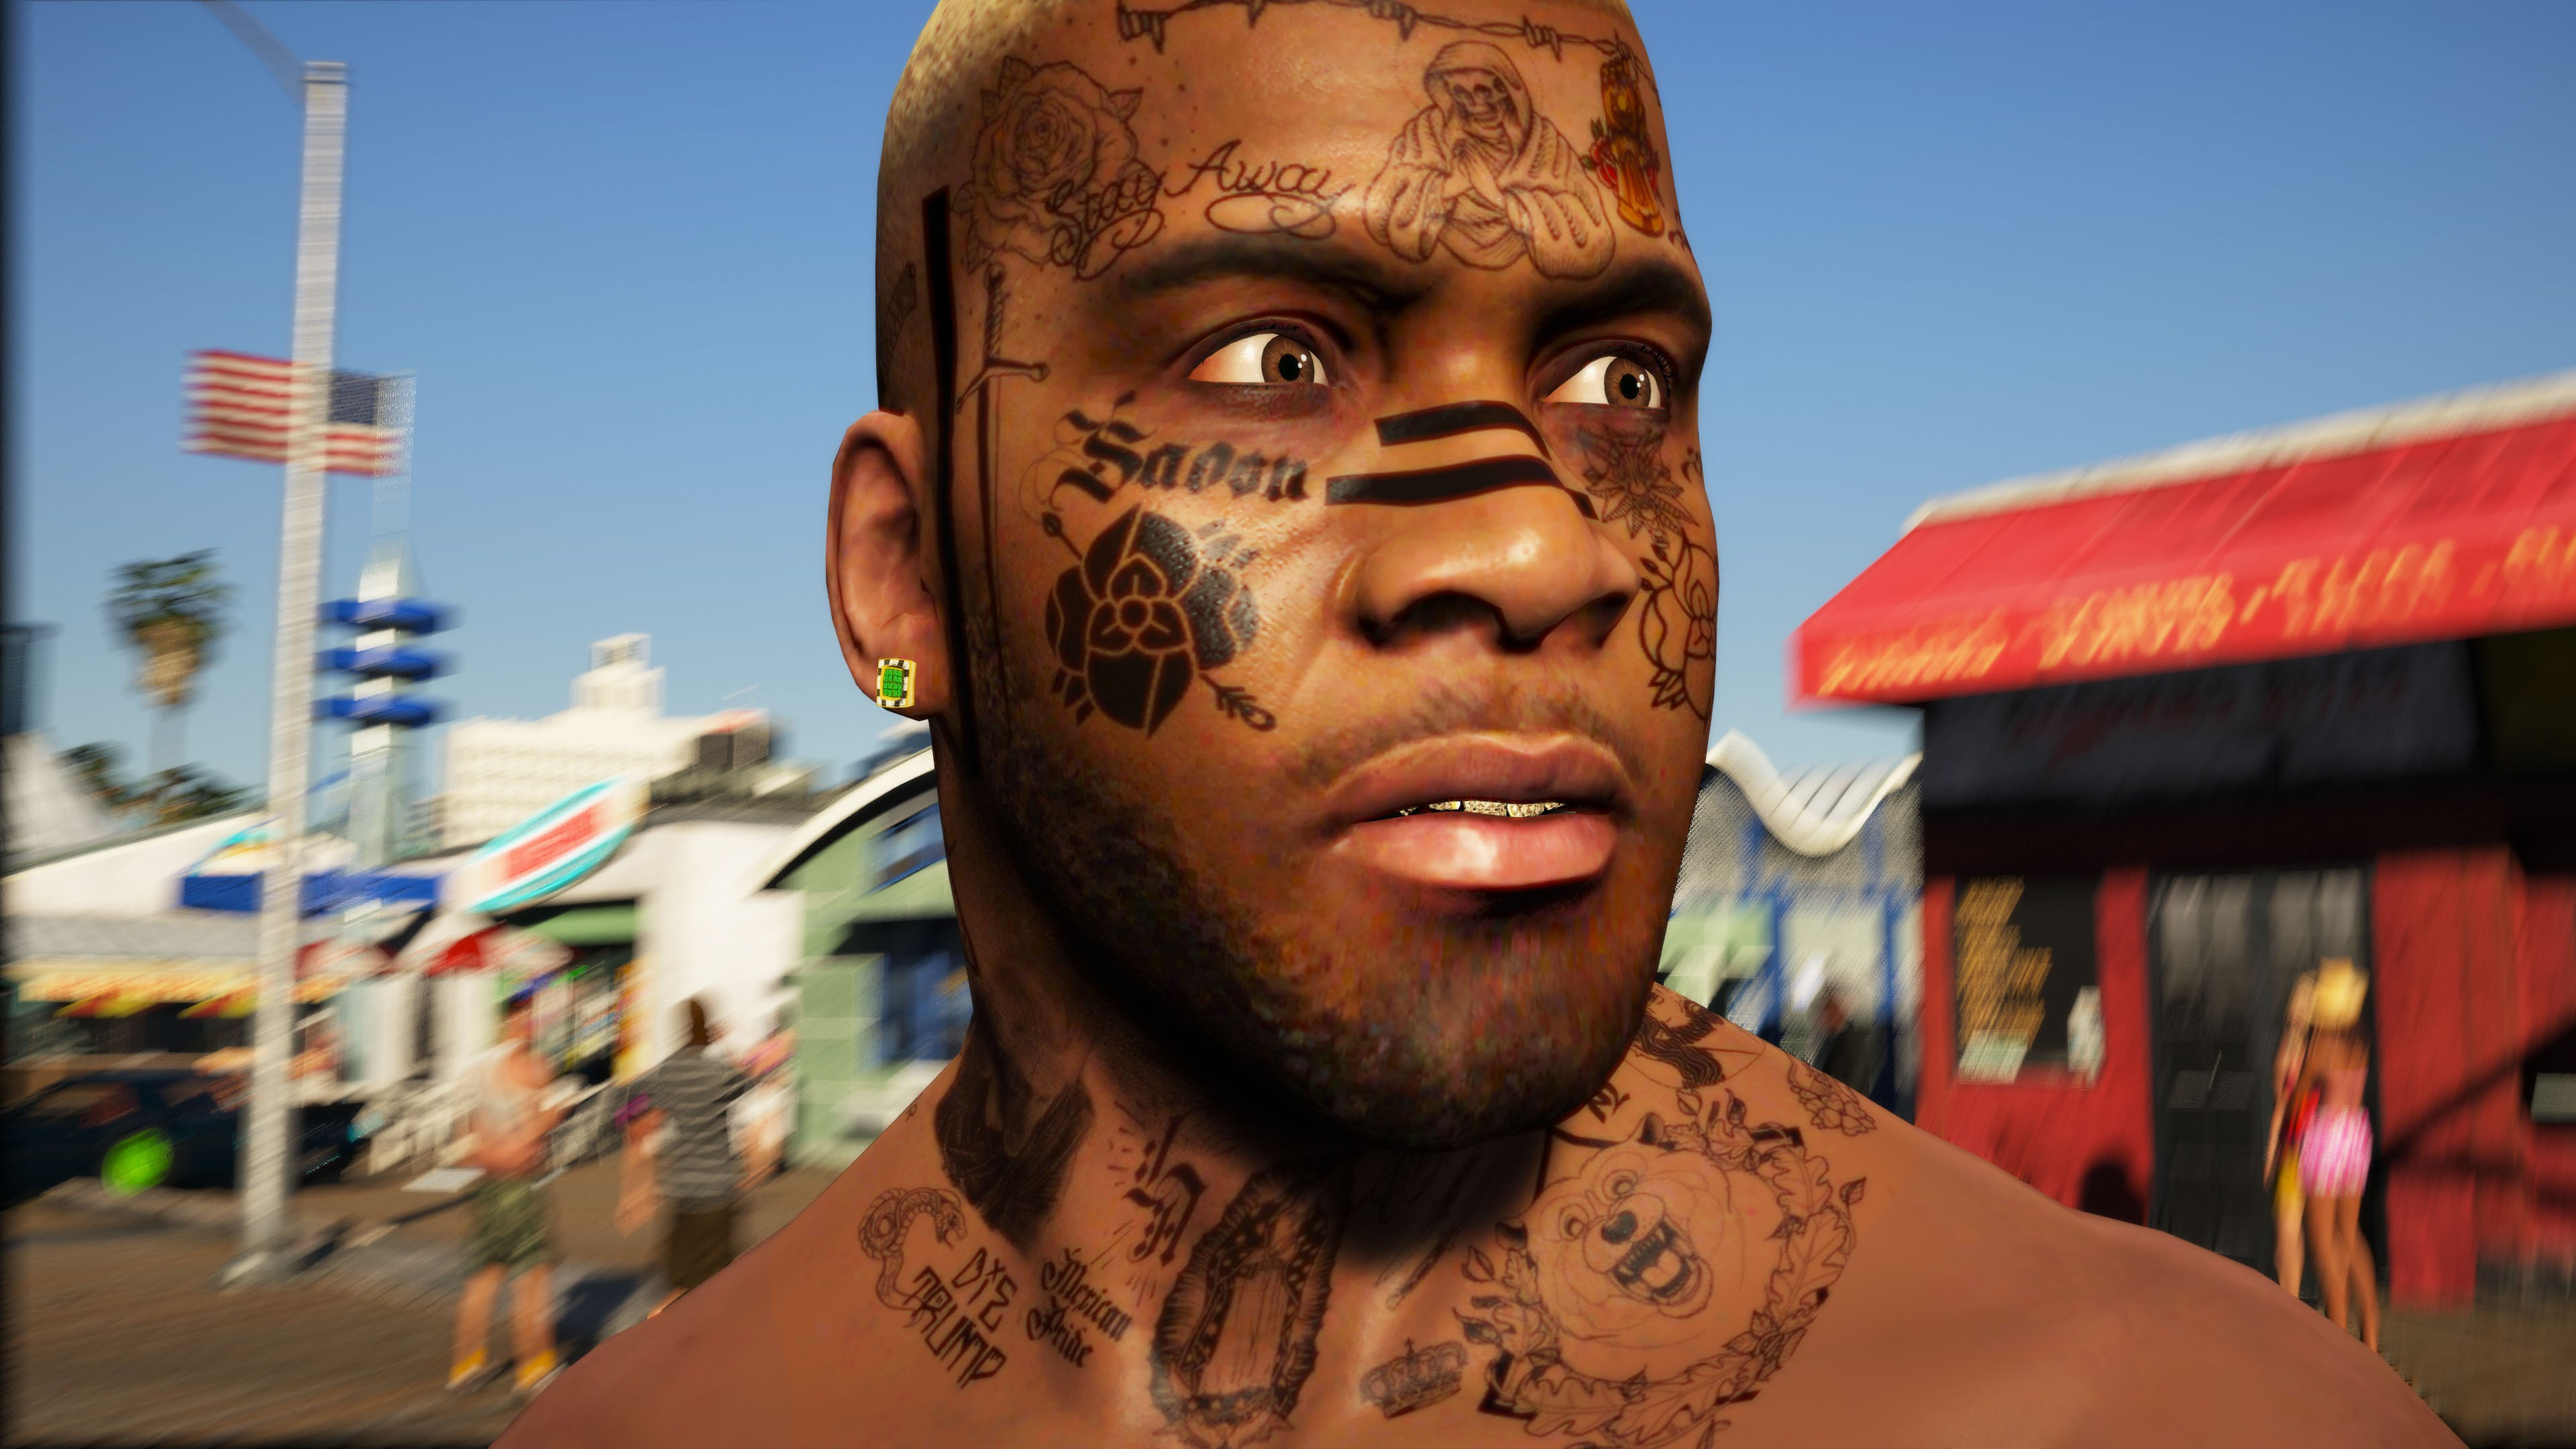 Hd Face Tattoos For Franklin Post Malone Esque Gta5